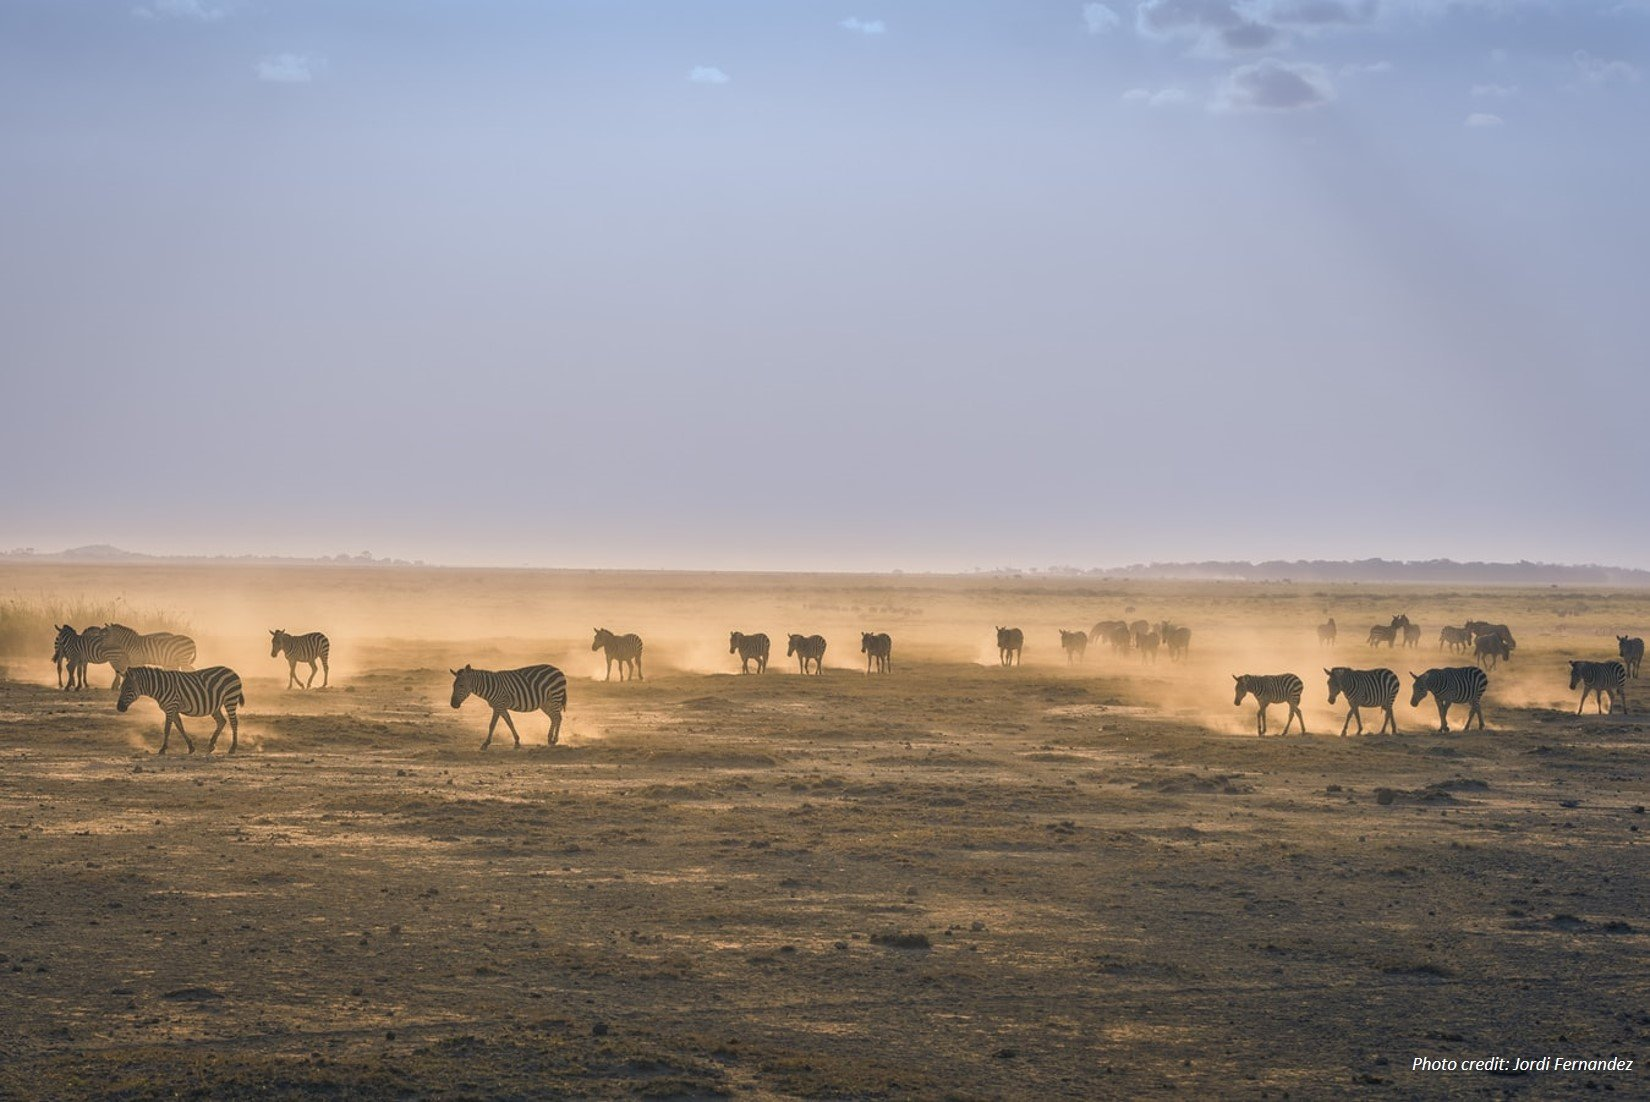 Zebras in Amboseli by Jordi Fernandez unsplash